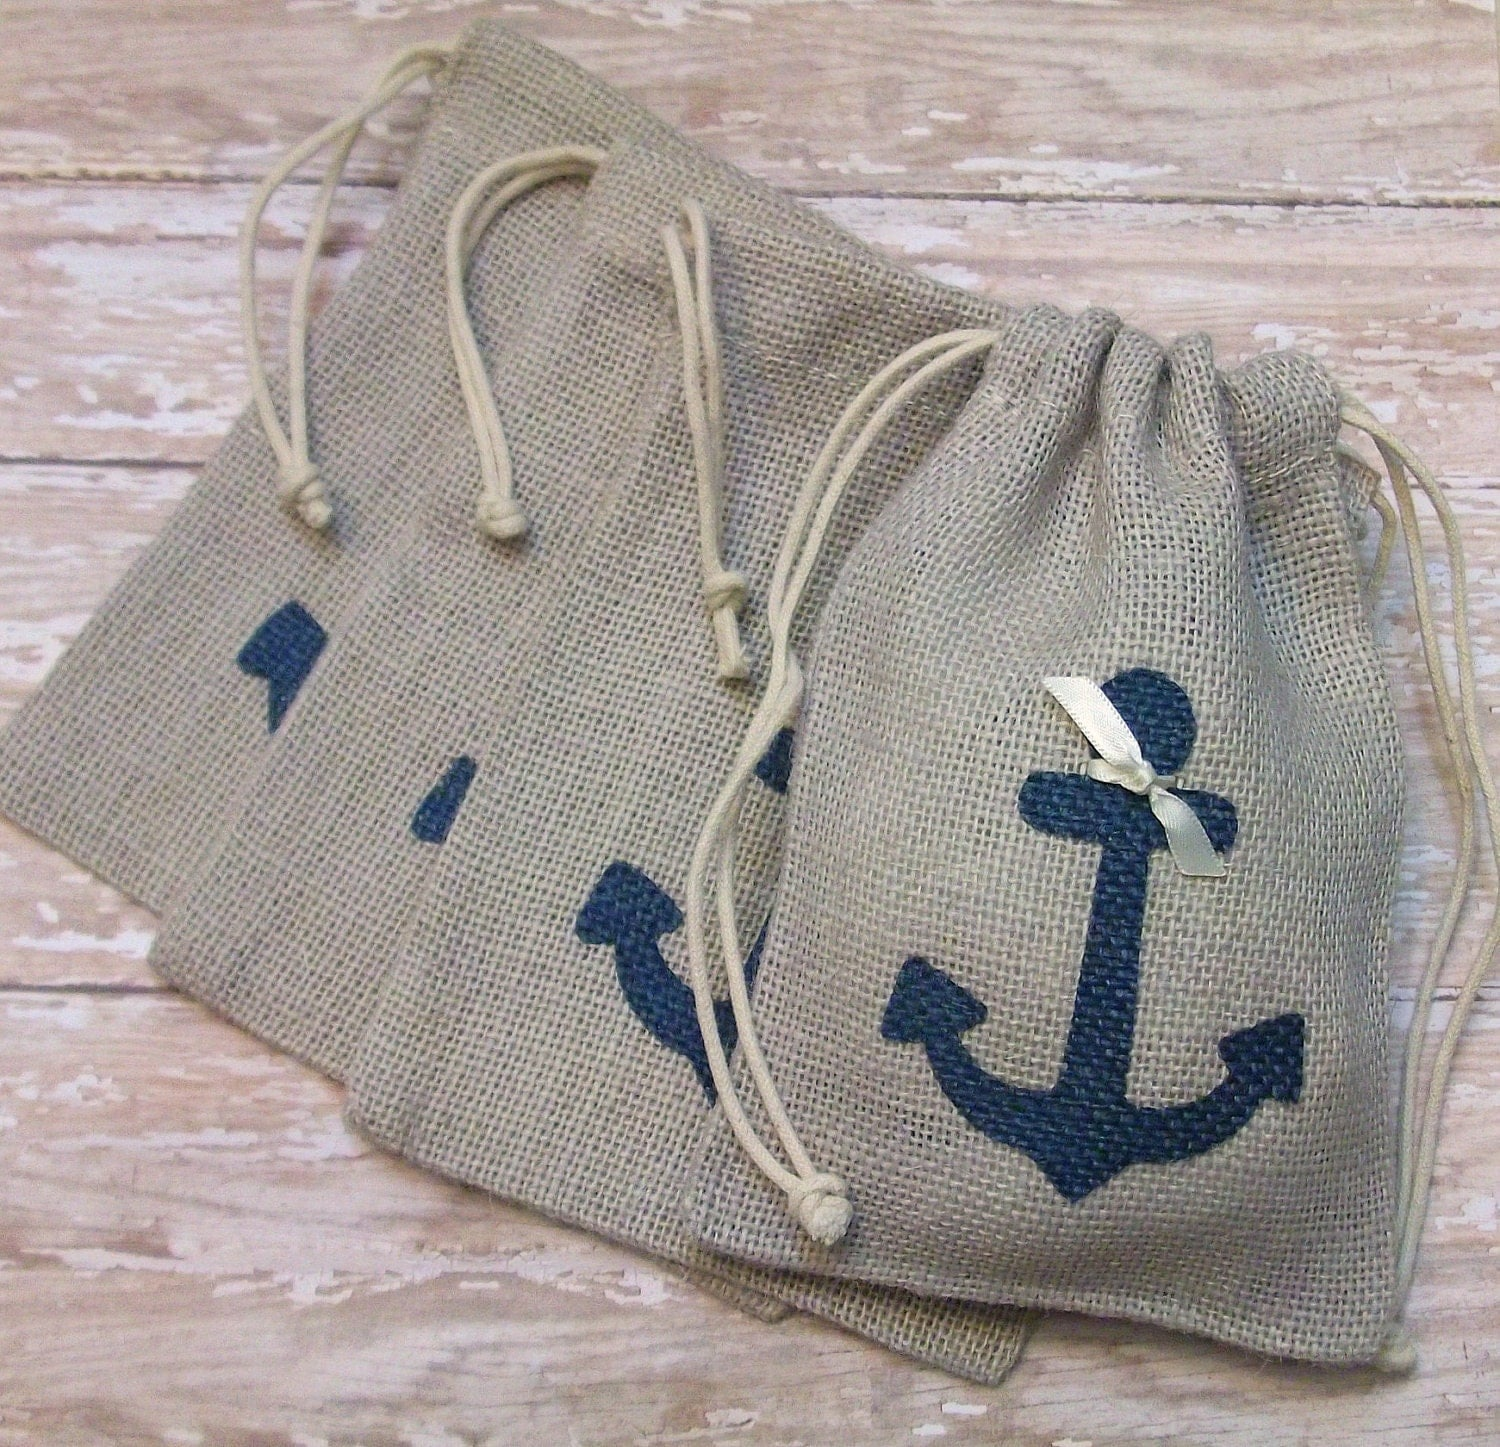 Burlap Wedding Ideas: Burlap Wedding Favors Or Gift Bags With Navy Blue Anchor